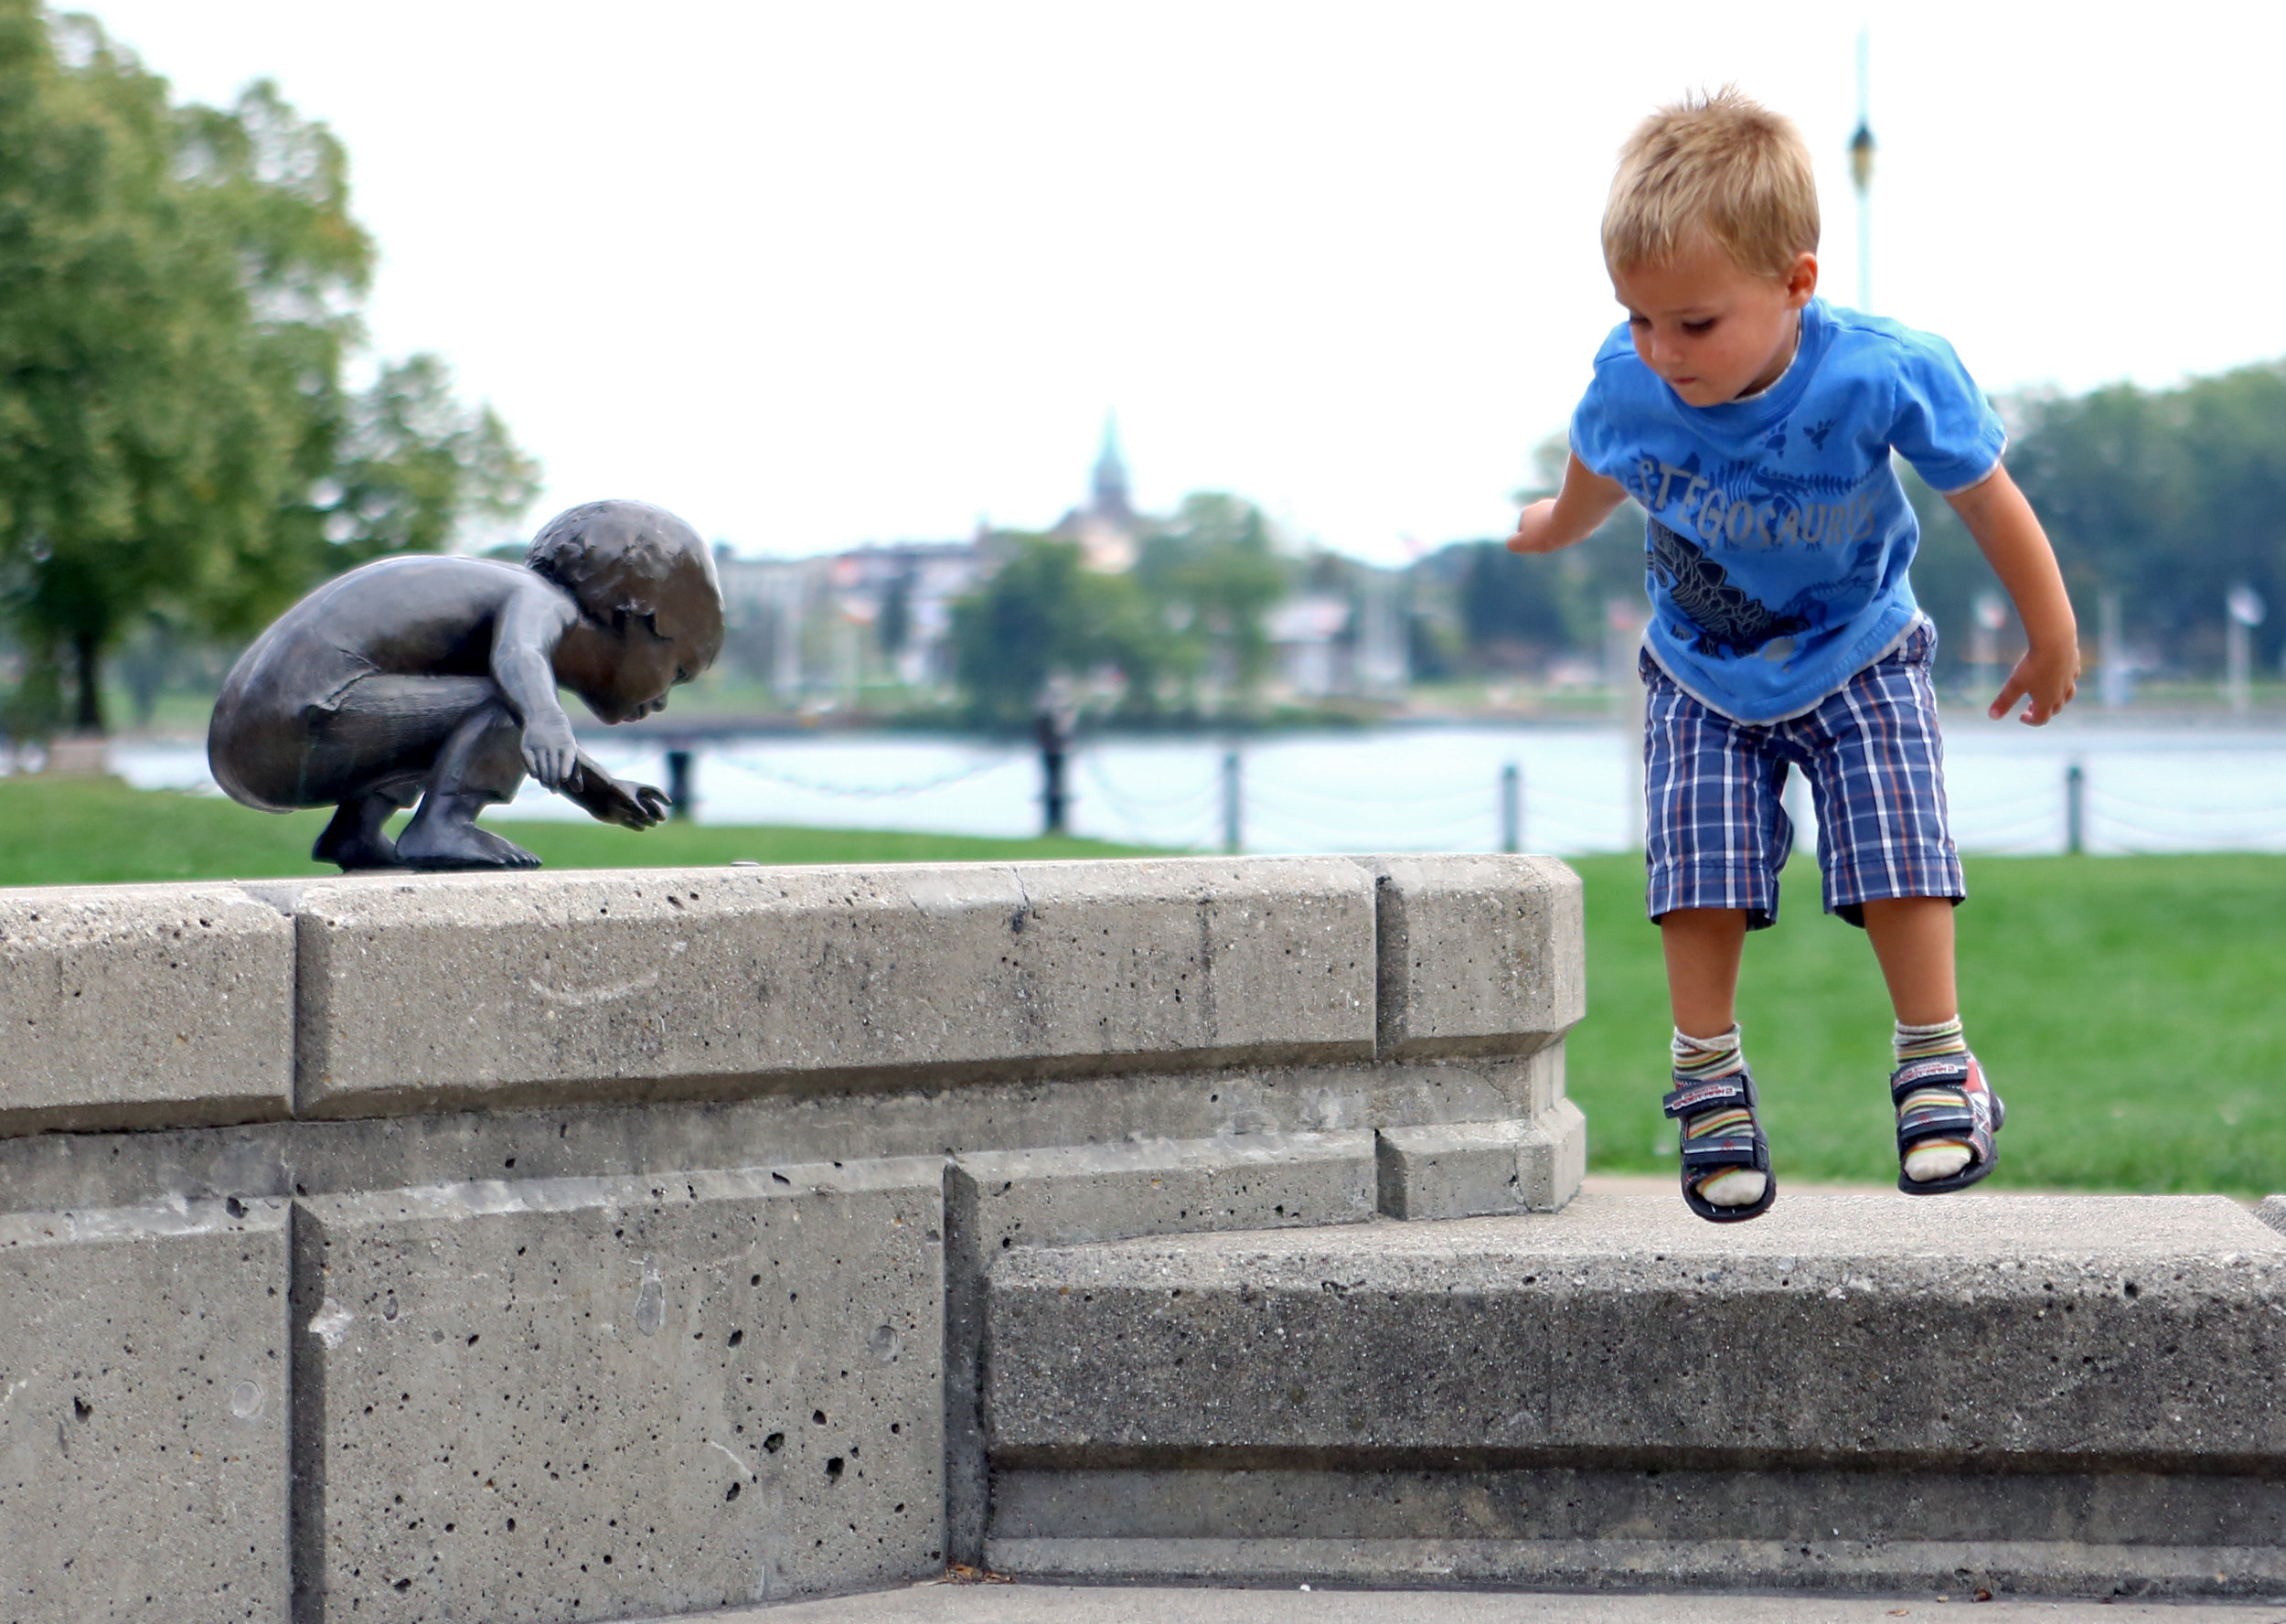 Bowen Brossia, 2, of Toledo jumps from a ledge by the statues in Toledo Park outside of the Imagination Station on Friday, Sept. 23, 2016.